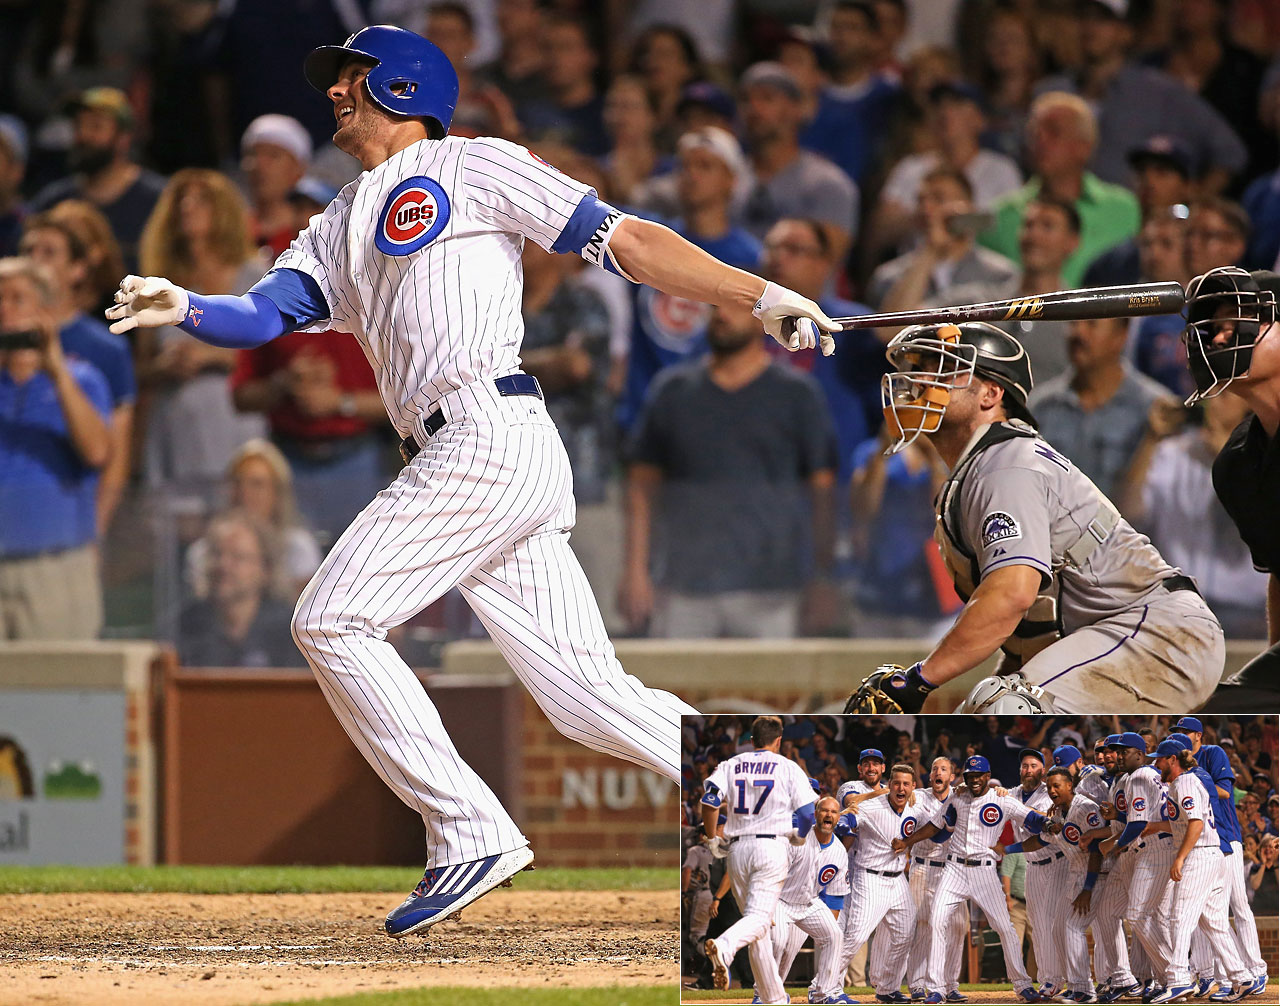 With his team trailing by a run with two out in the ninth inning of a July 27 game against Colorado, Kris Bryant hit this two-run homer to lift the Cubs to a 9-8 victory.